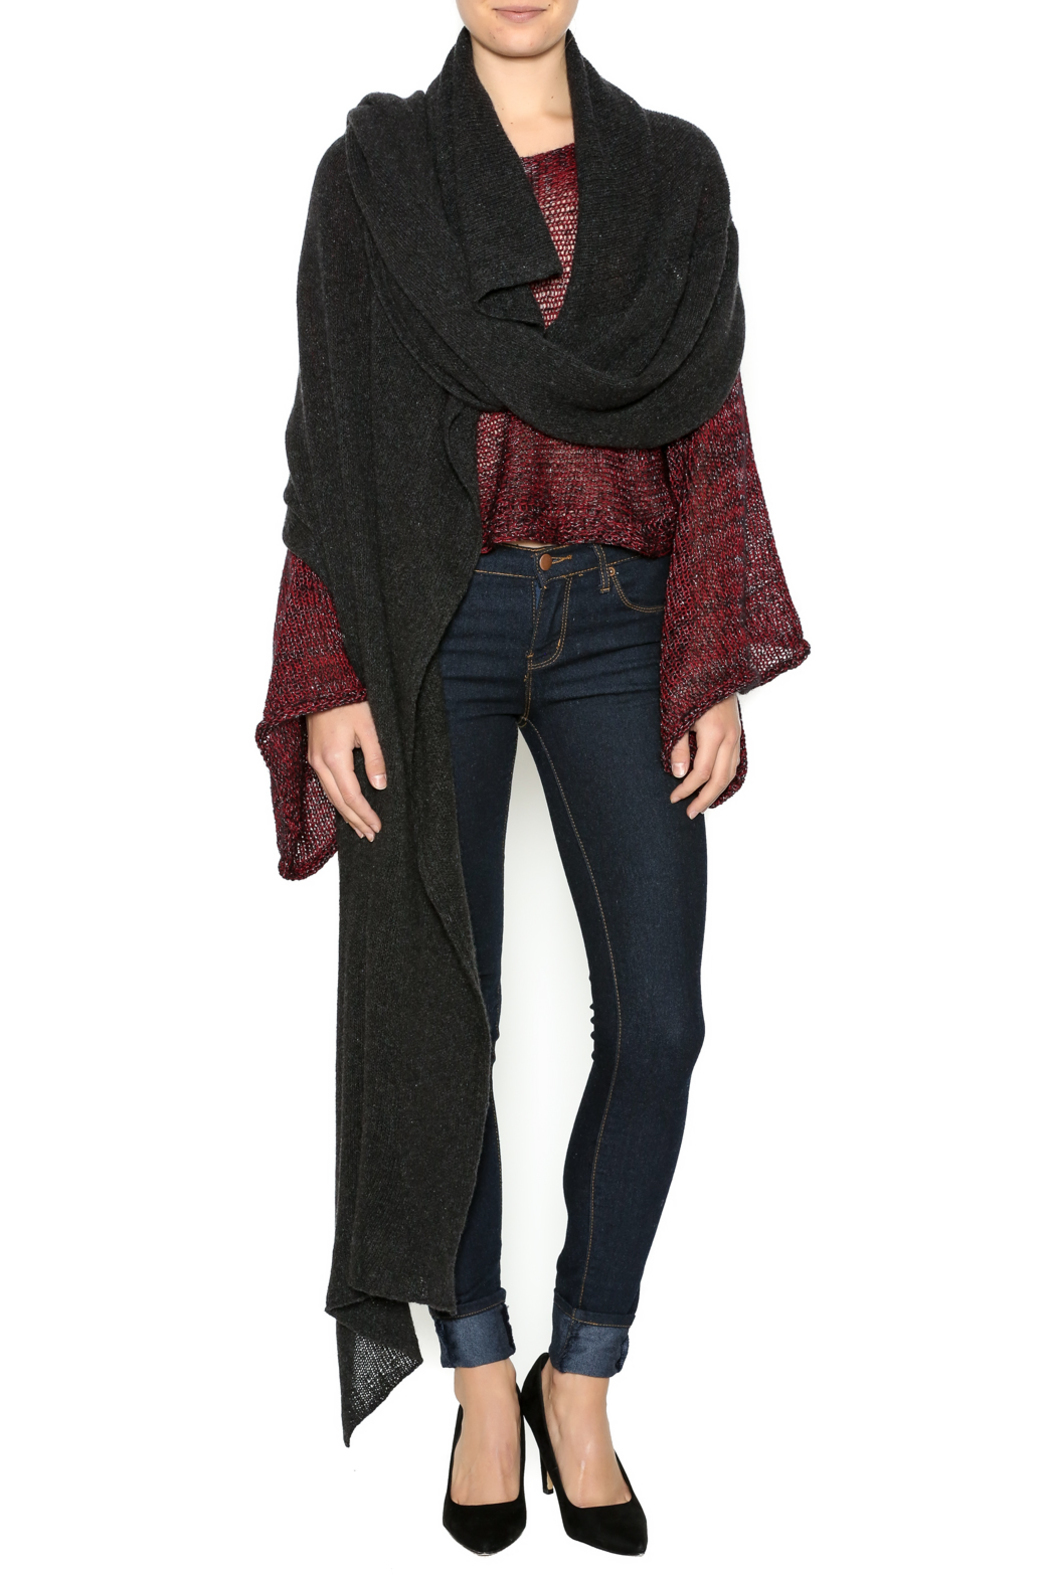 DC KNITS Anthracite Cashmere Ruana - Front Full Image